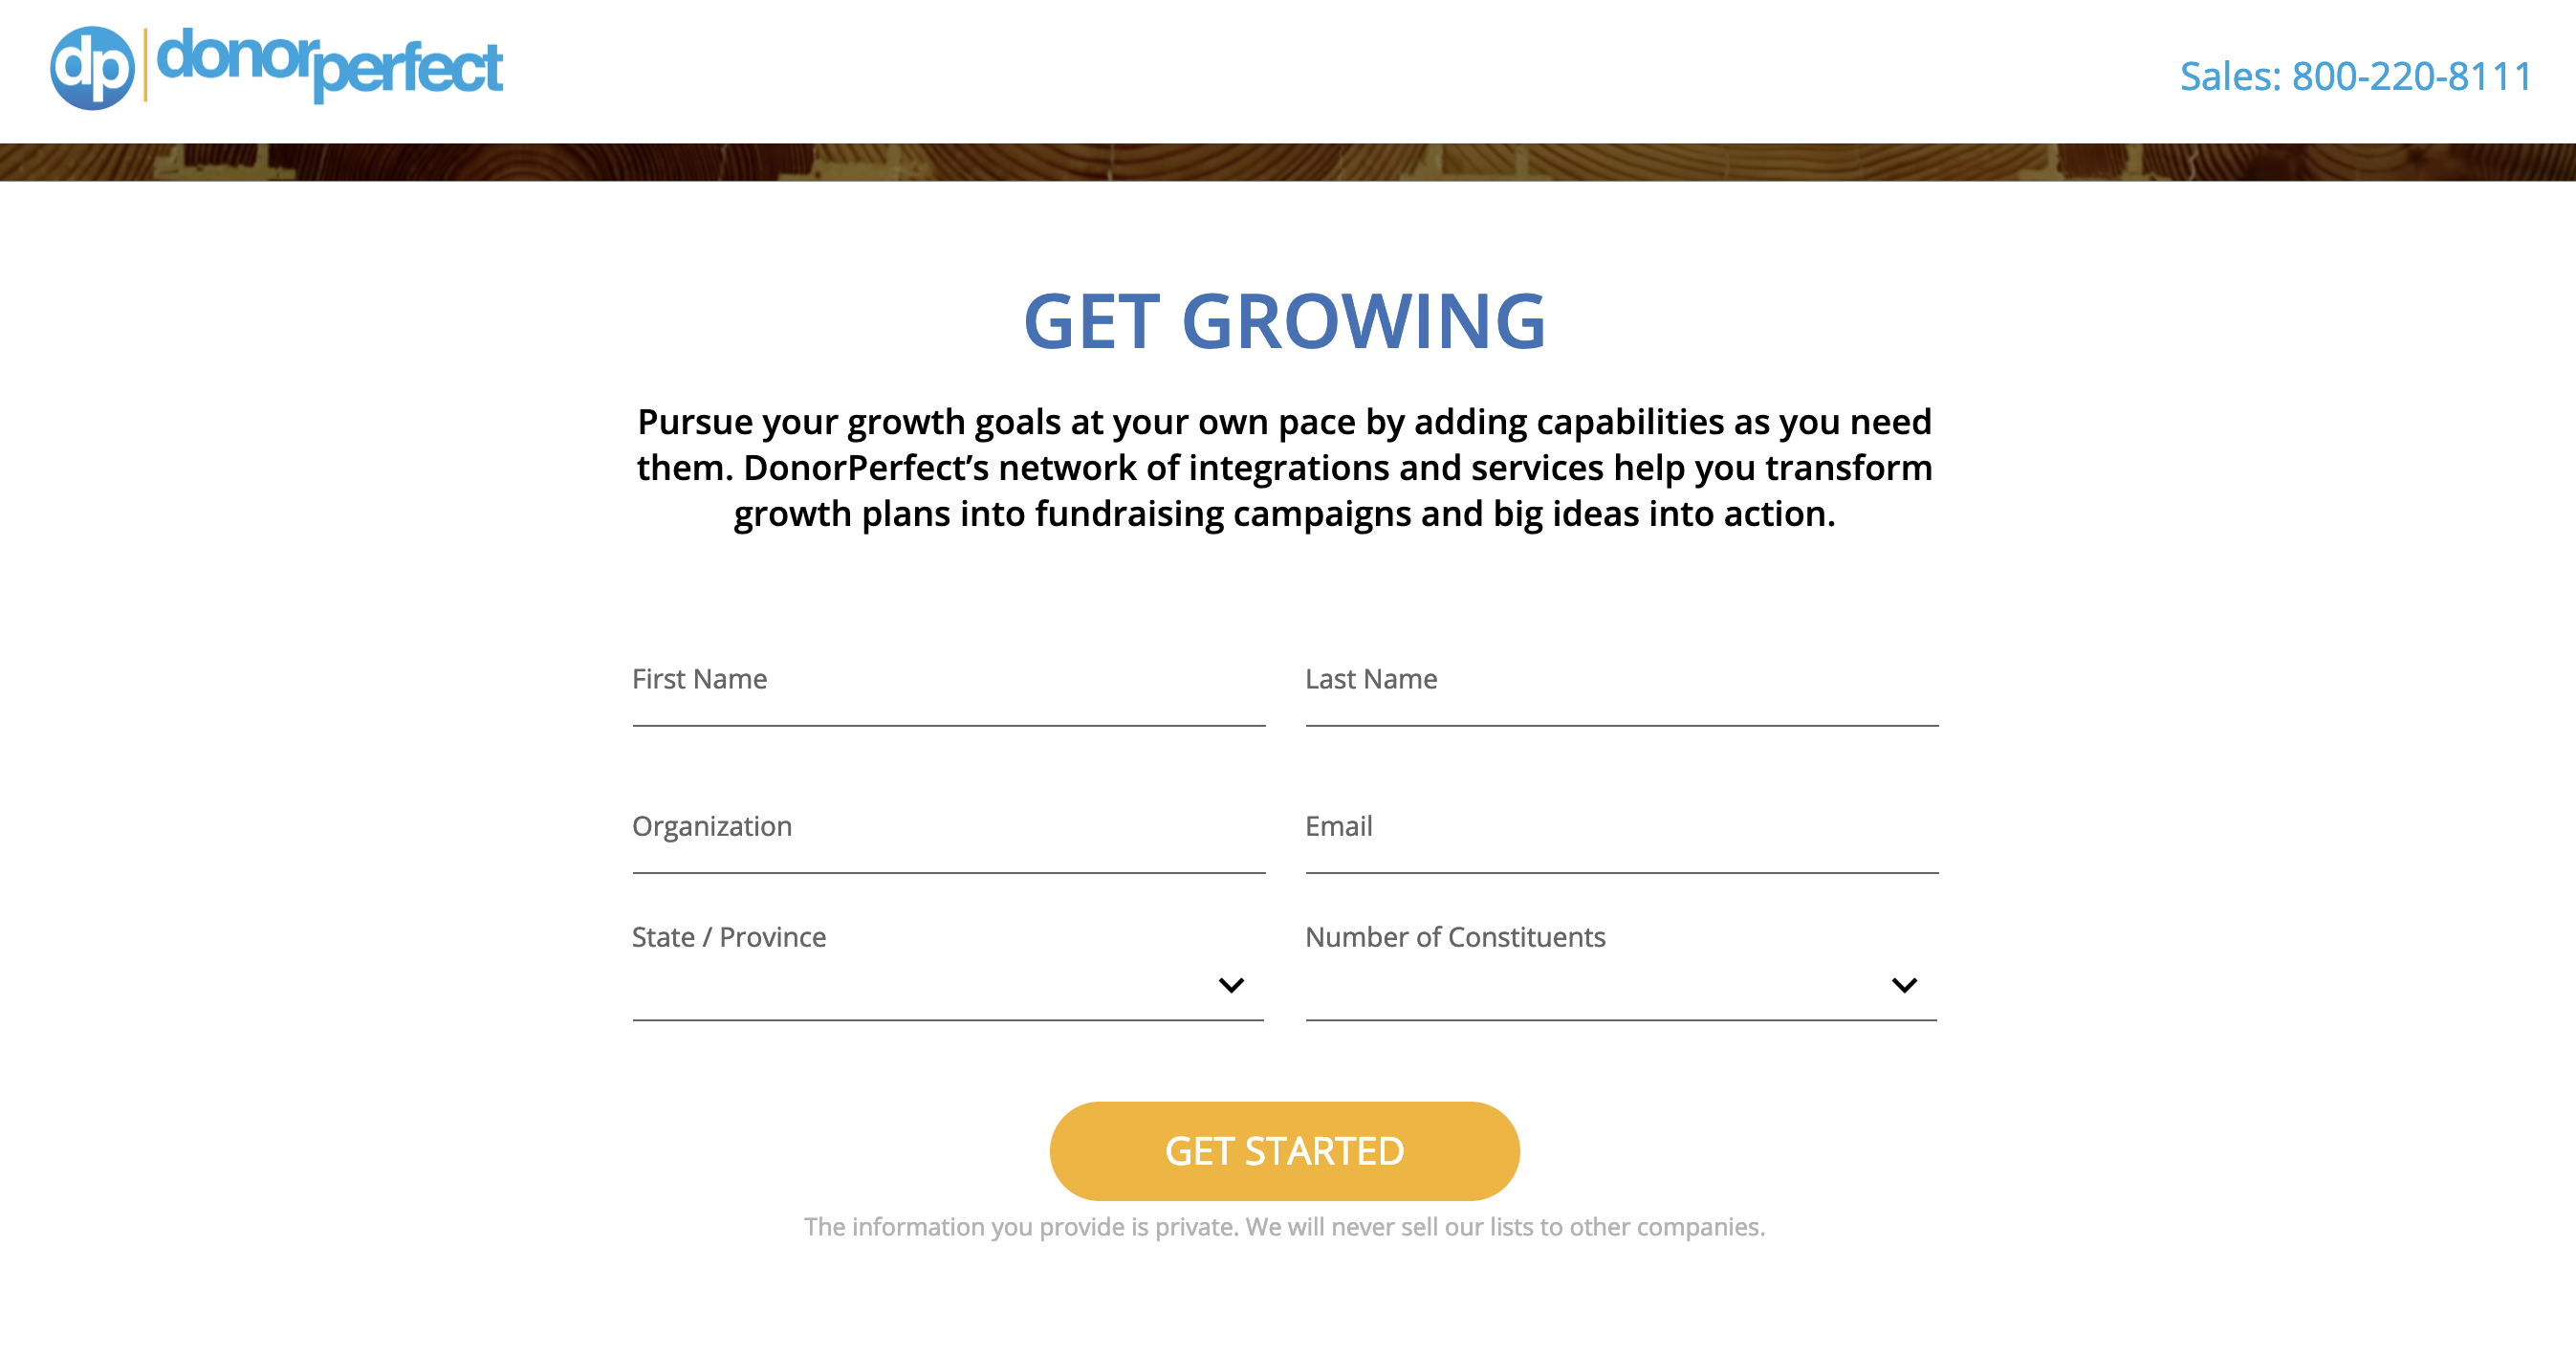 donorperfect landing page